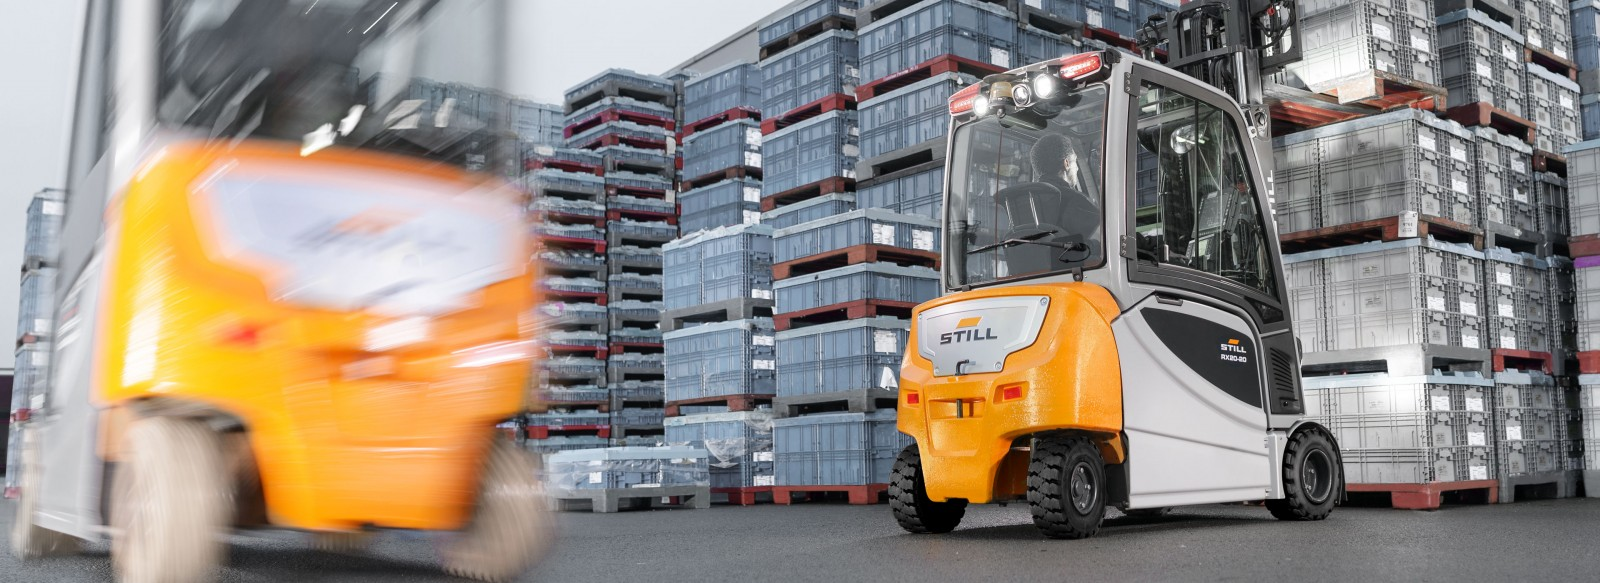 Electric Forklift Trucks - The right solution for any application